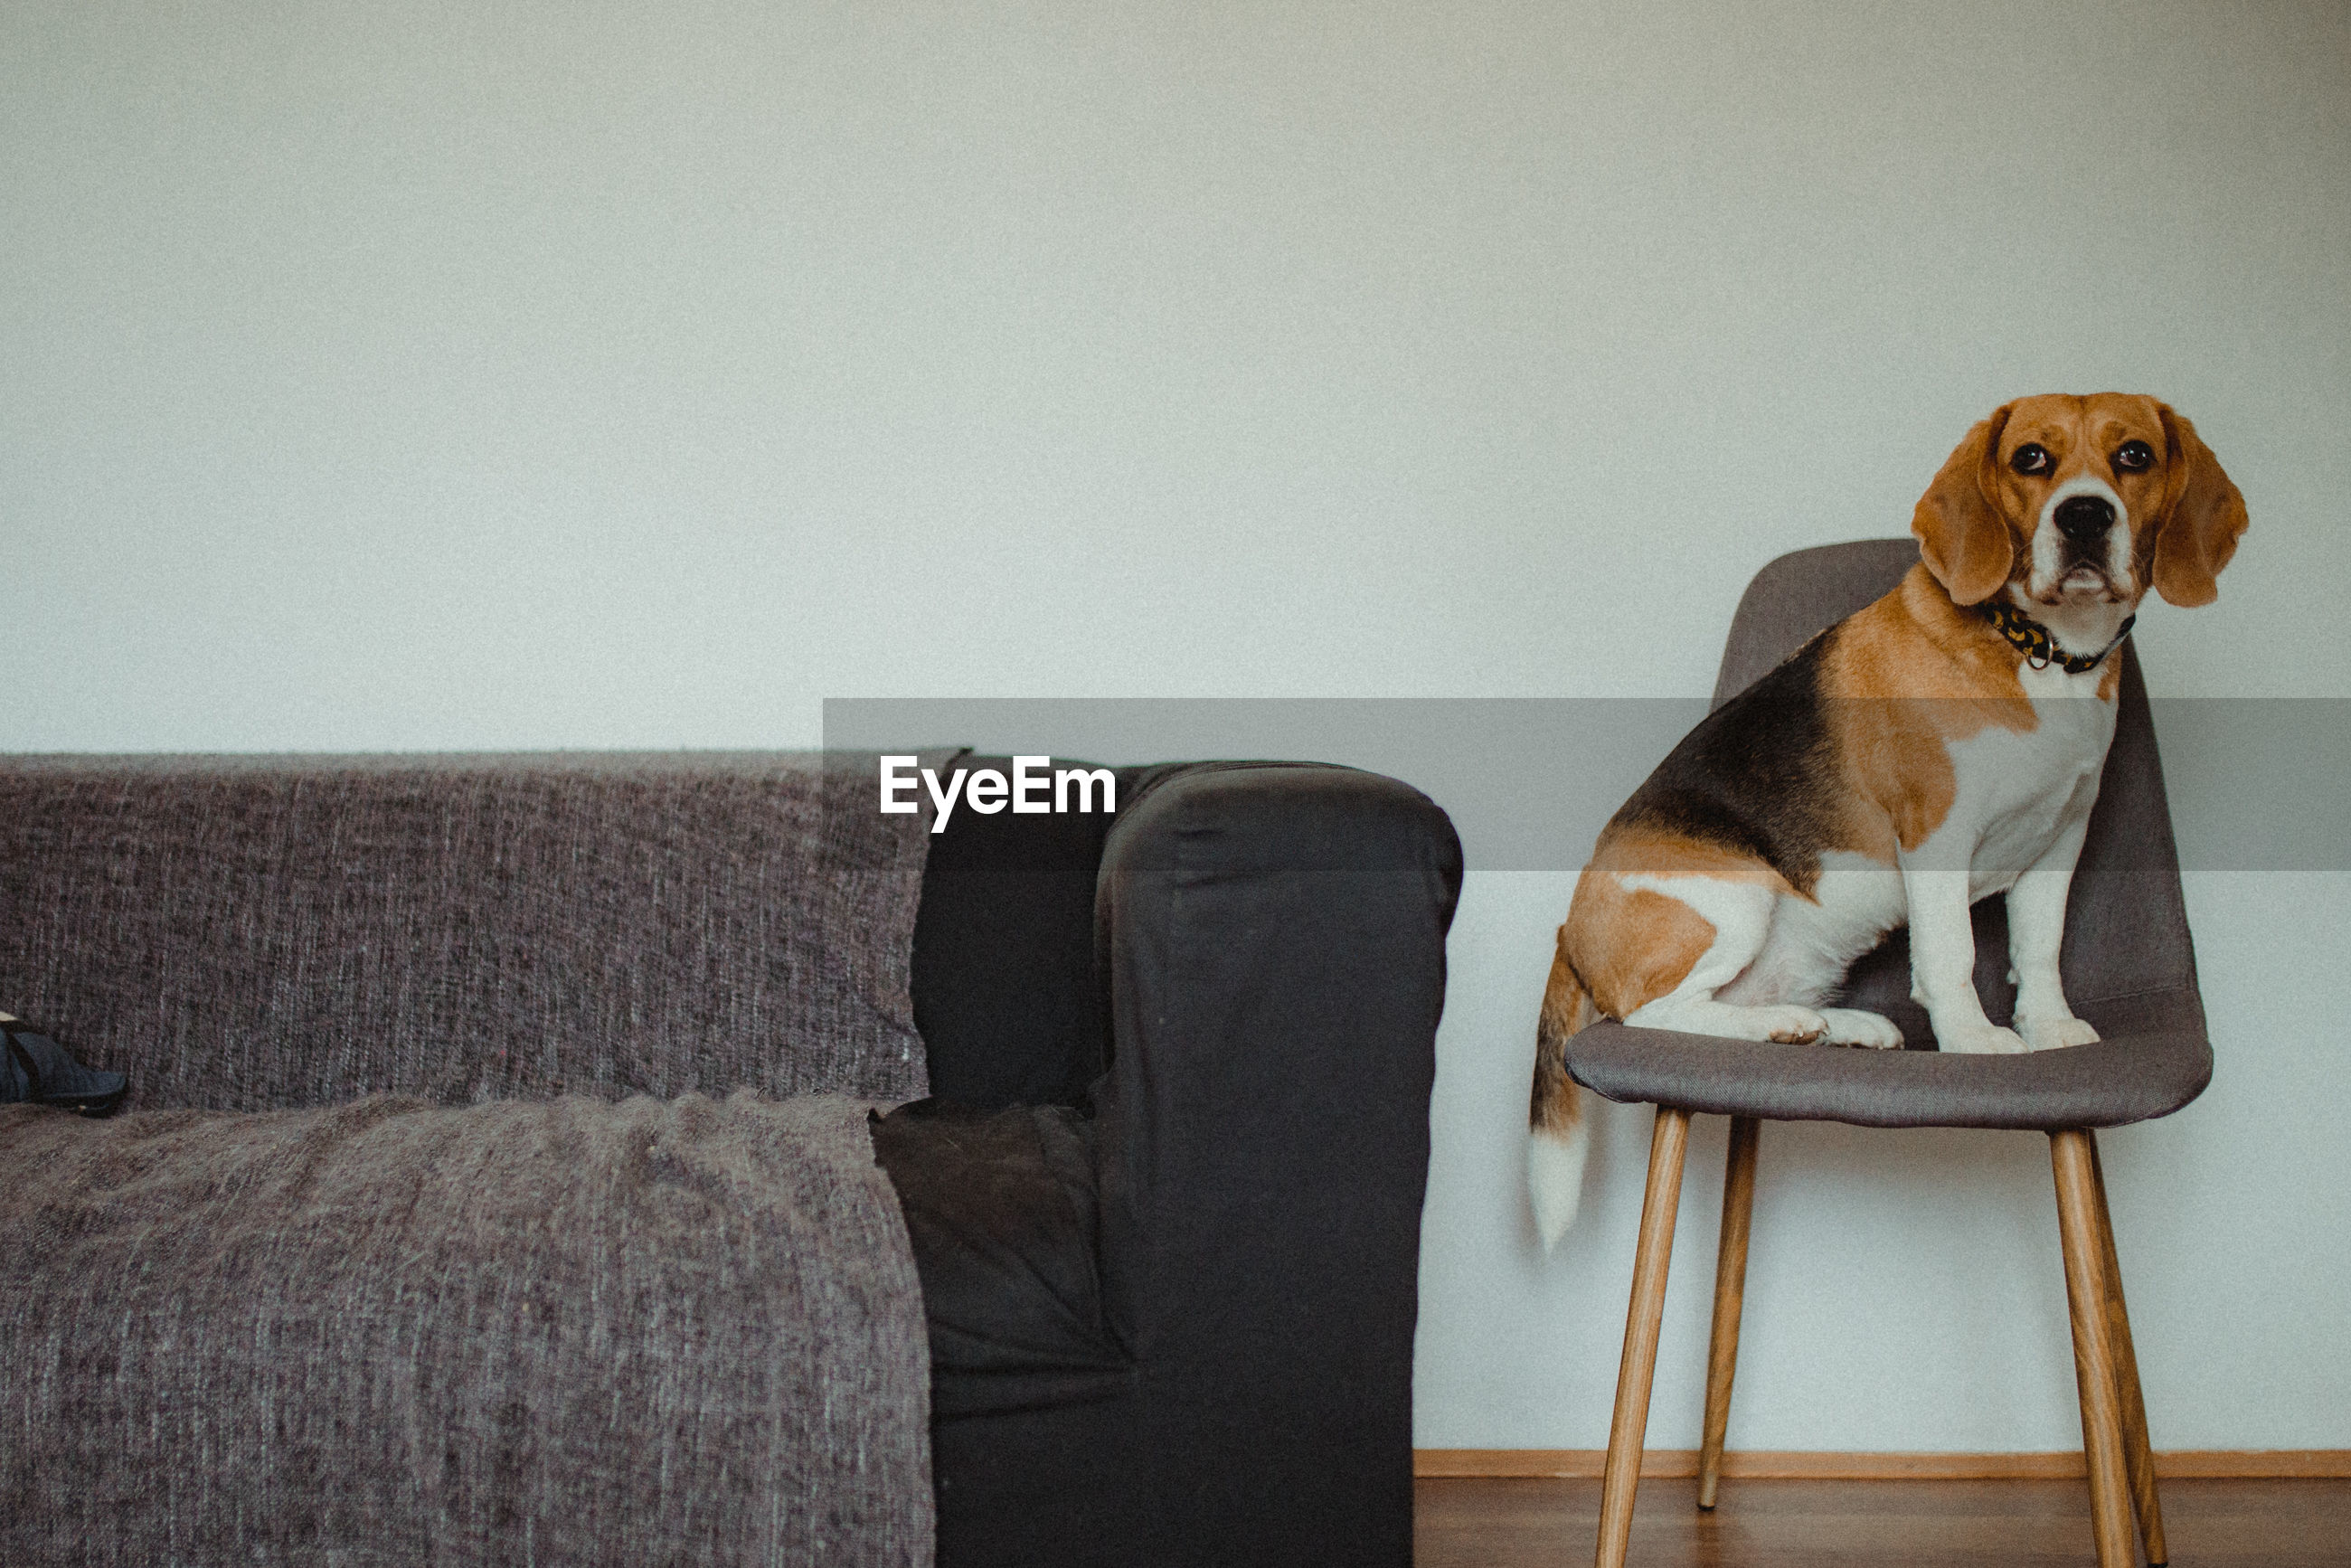 Dog looking away while sitting on sofa